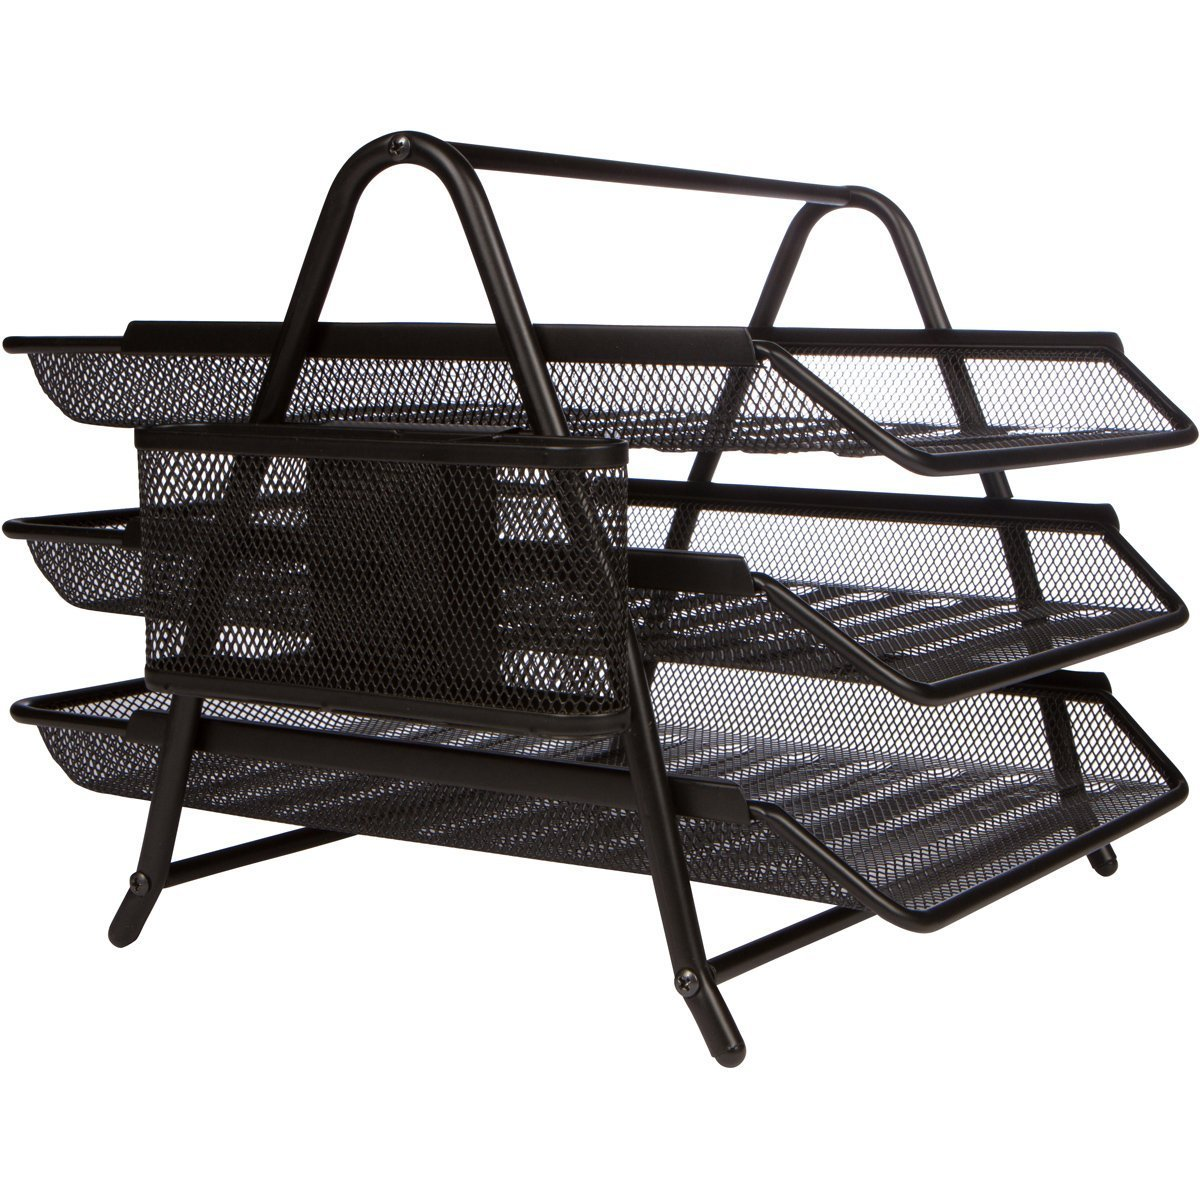 CHL 3-tier Document Tray (pck)